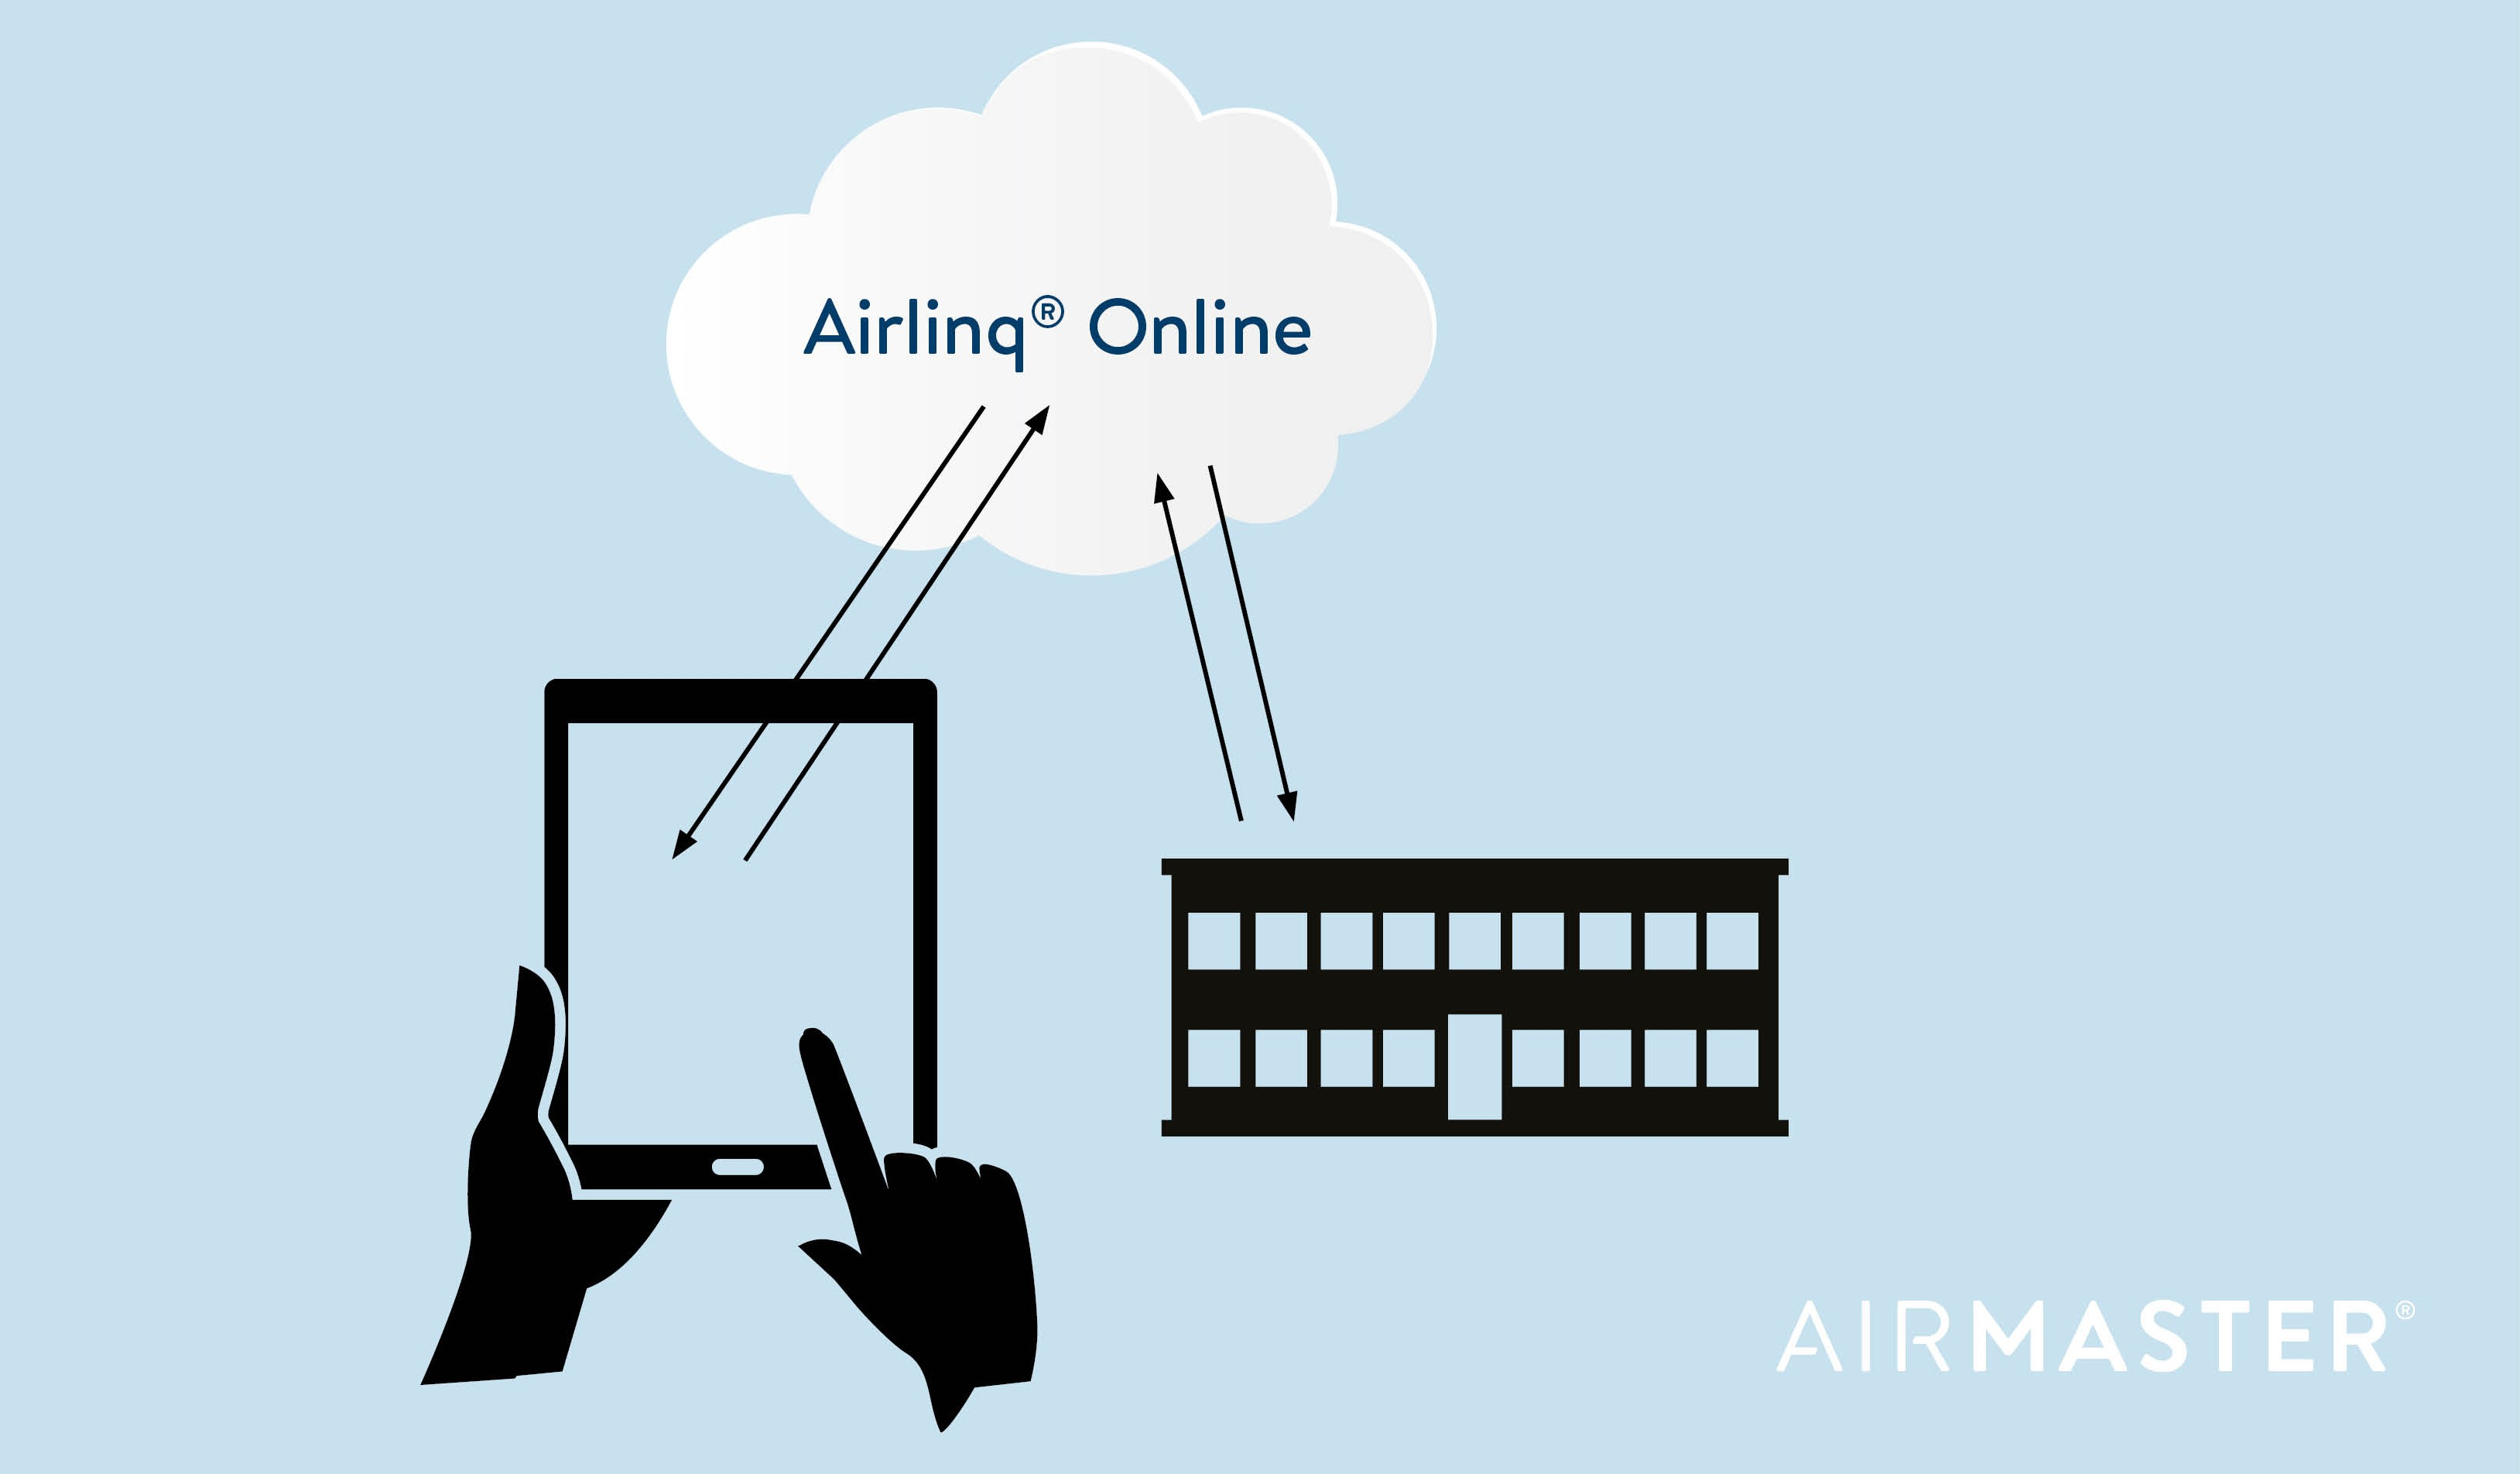 Airlinq Online